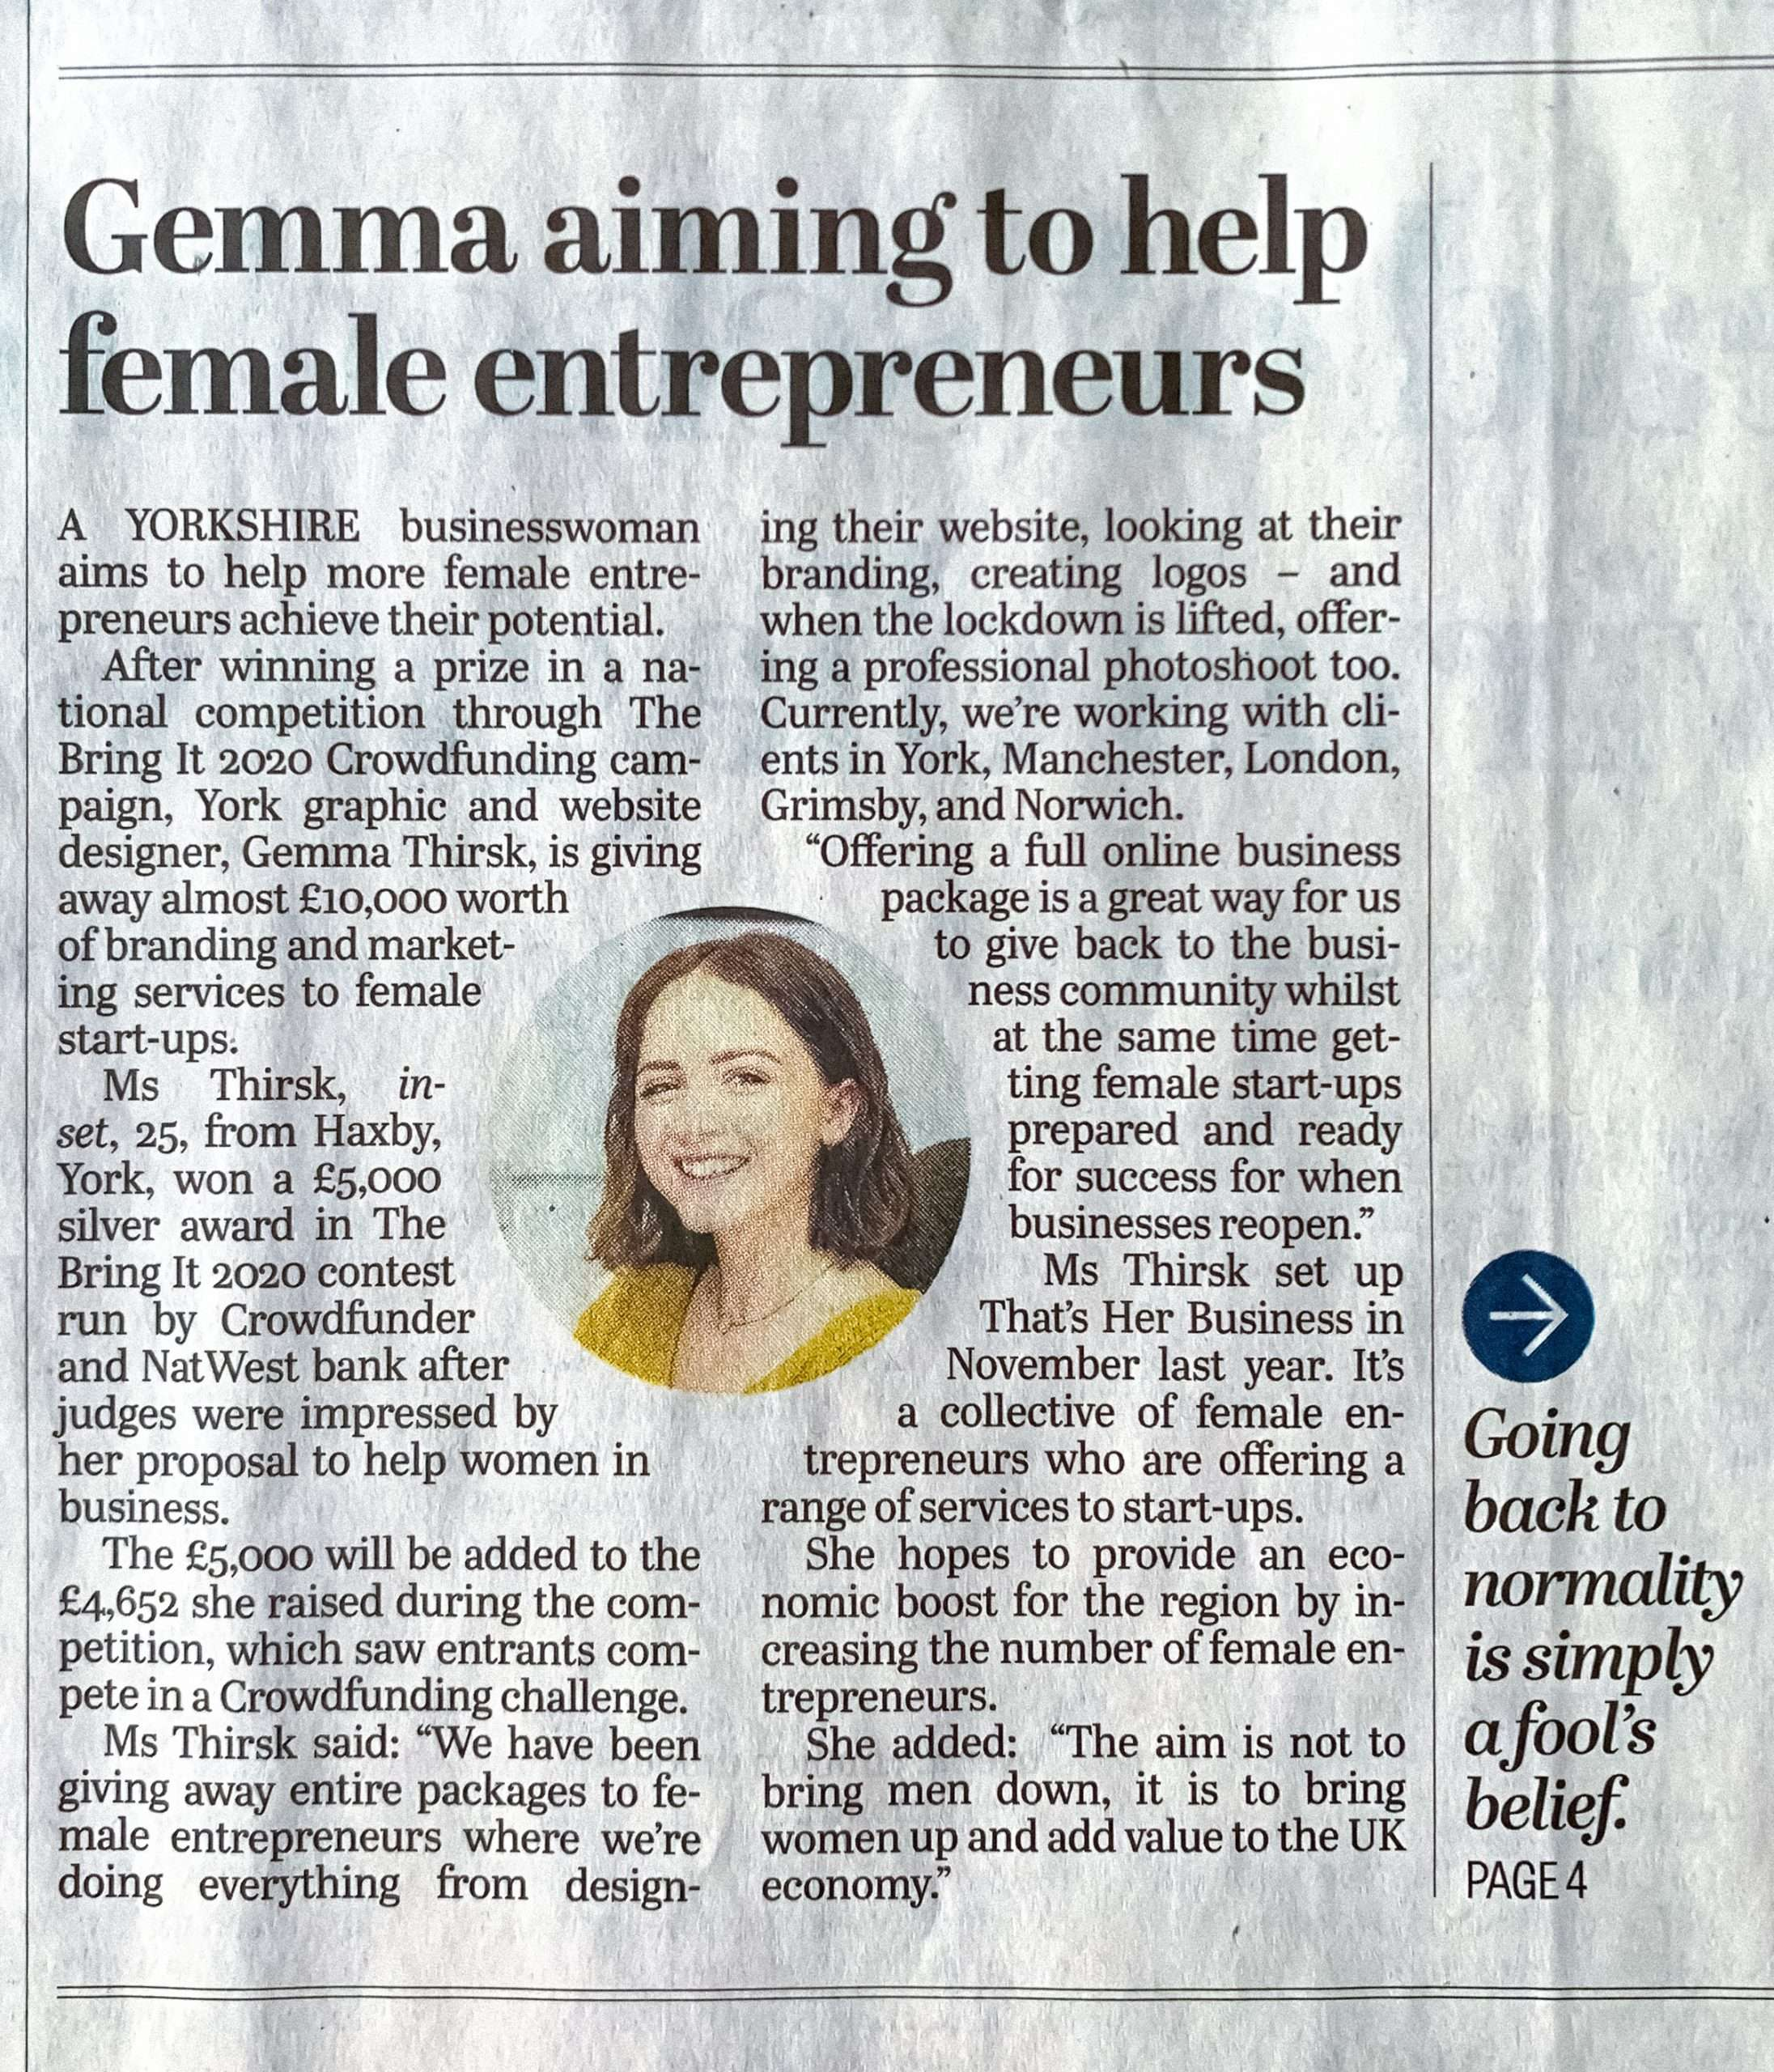 AN ENTREPRENEUR is giving away thousands of pounds worth of business support to help other female start-ups.